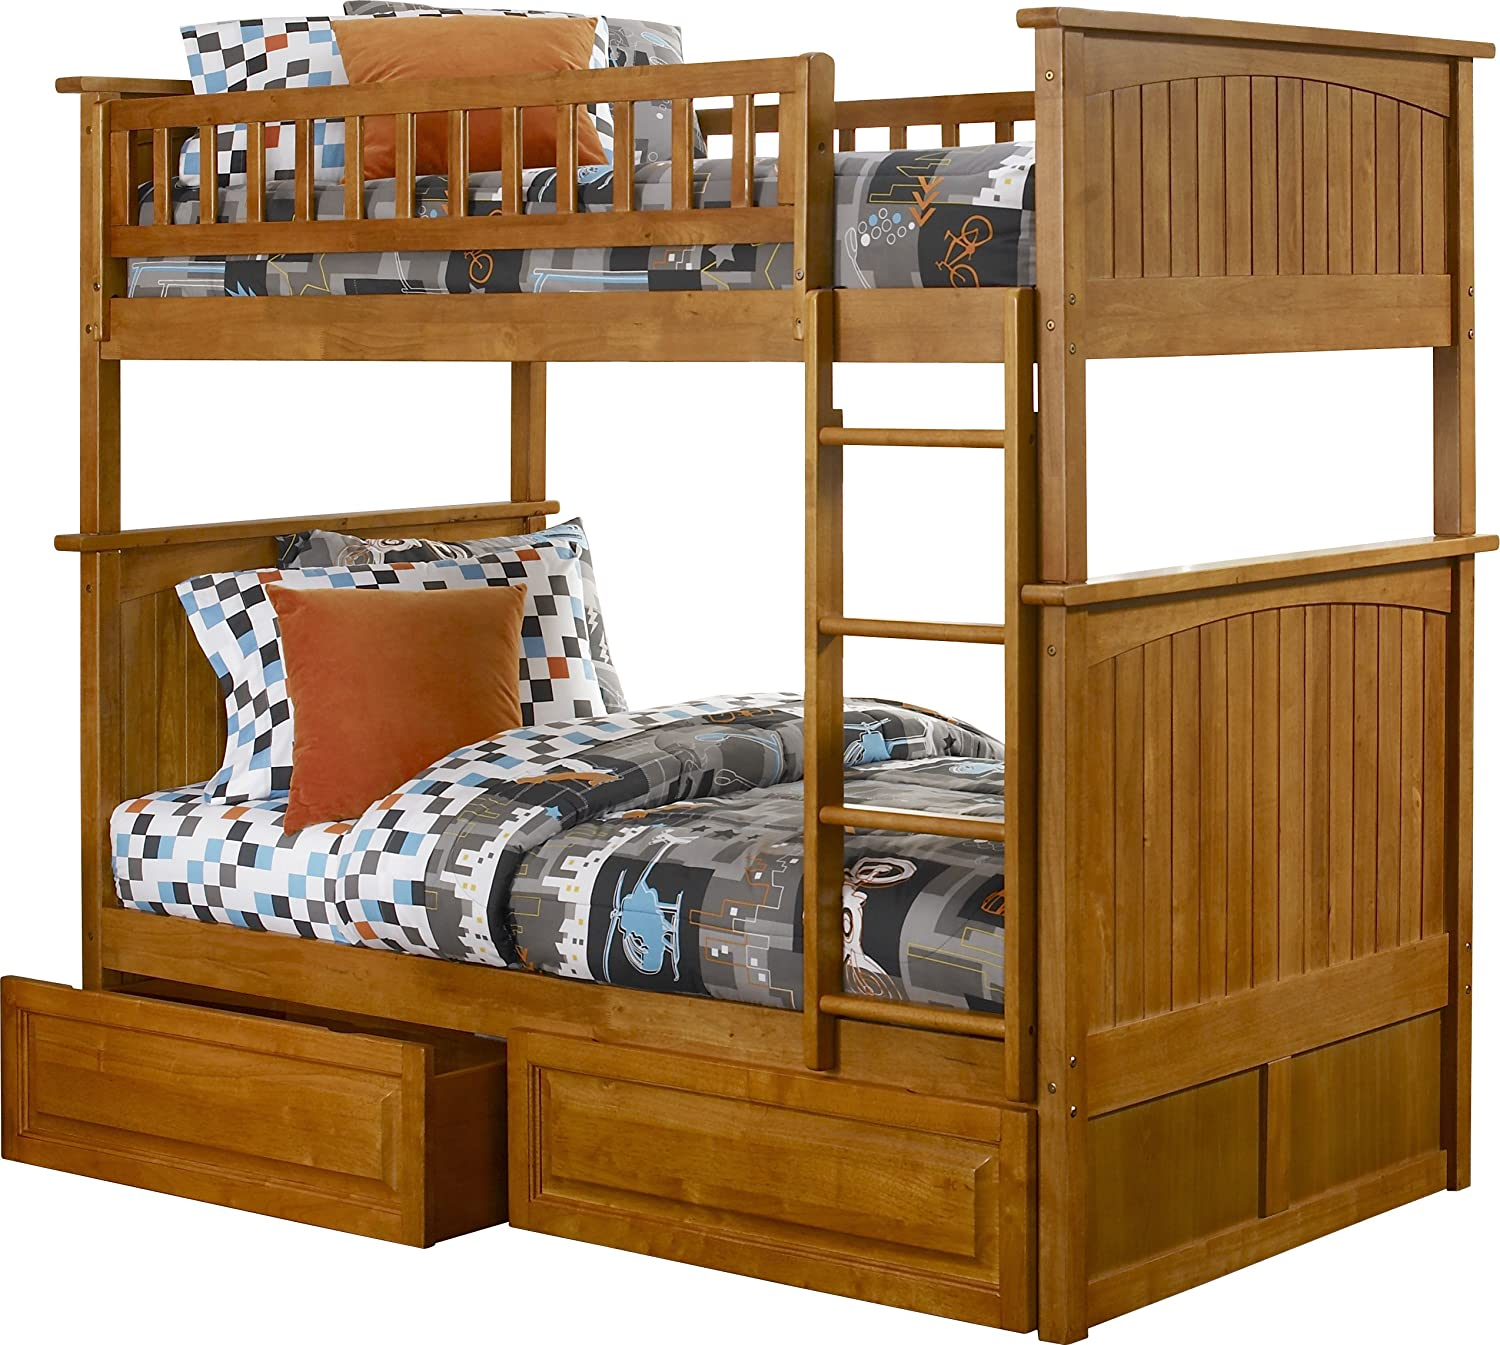 Nantucket bedroom furniture - Amazon Com Nantucket Bunk Bed With 2 Raised Panel Bed Drawers Twin Over Twin White Kitchen Dining